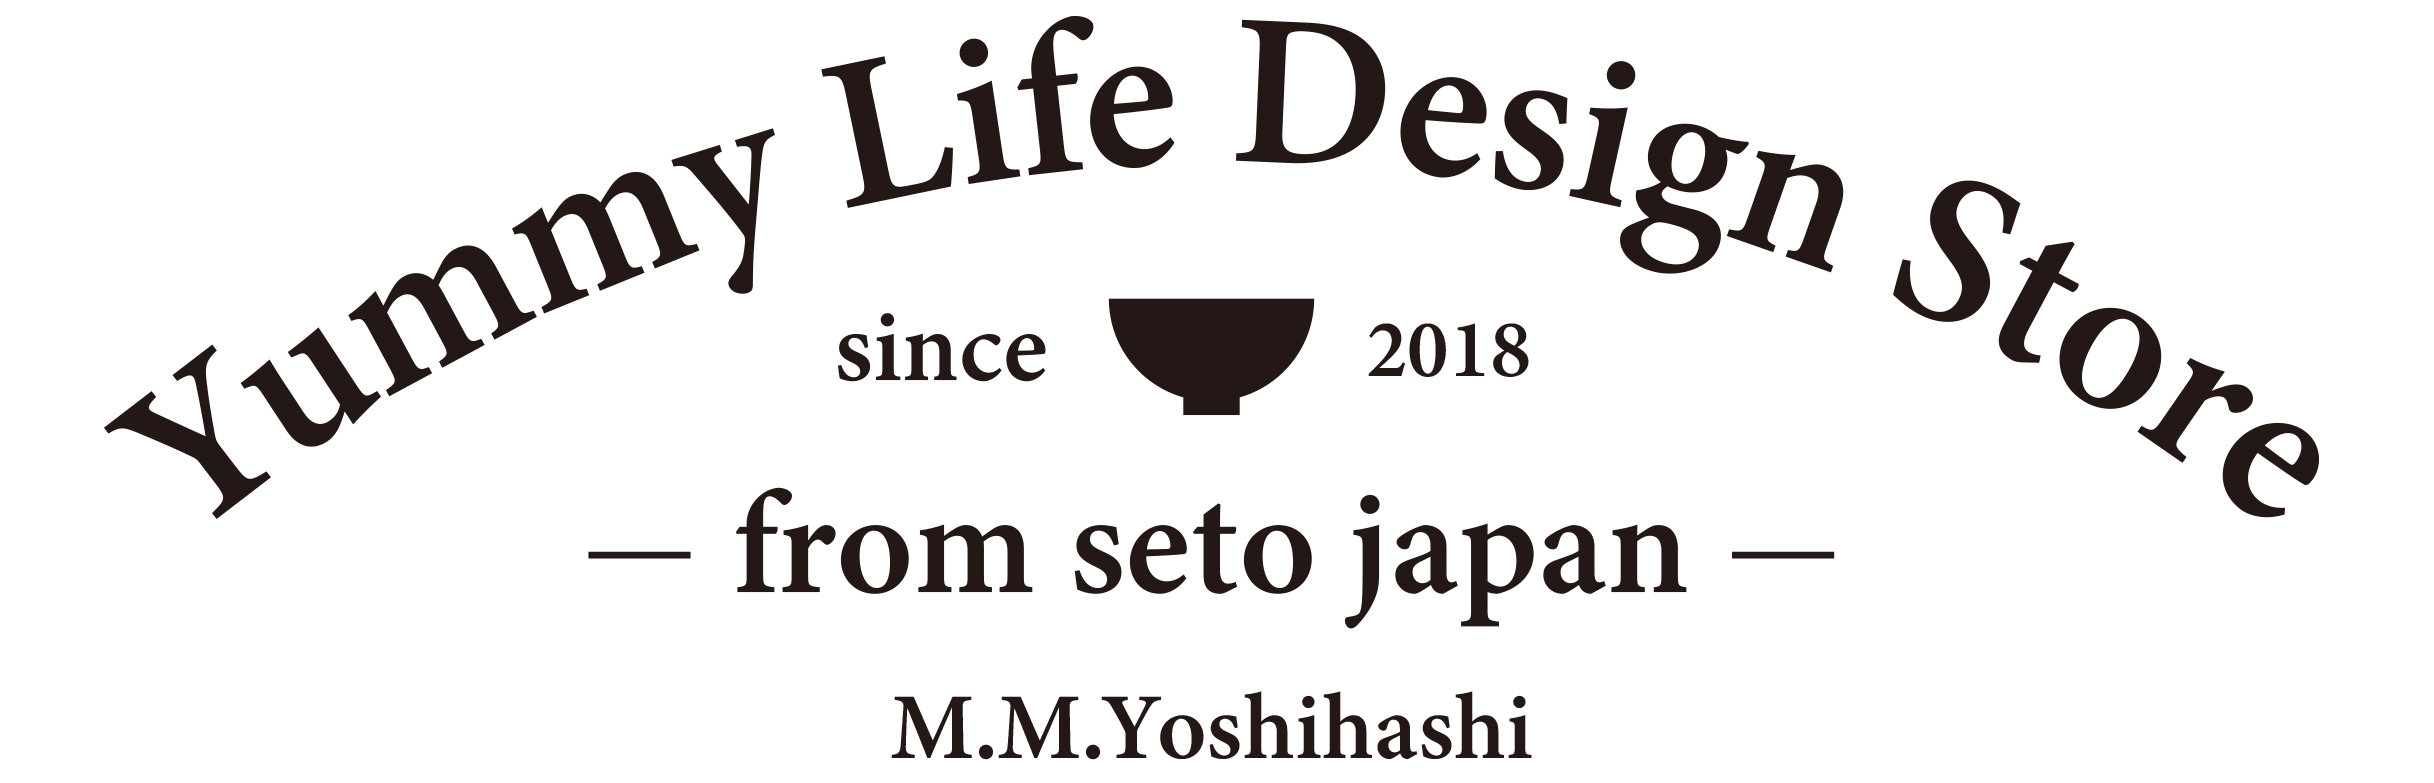 Yummy Life Design Store